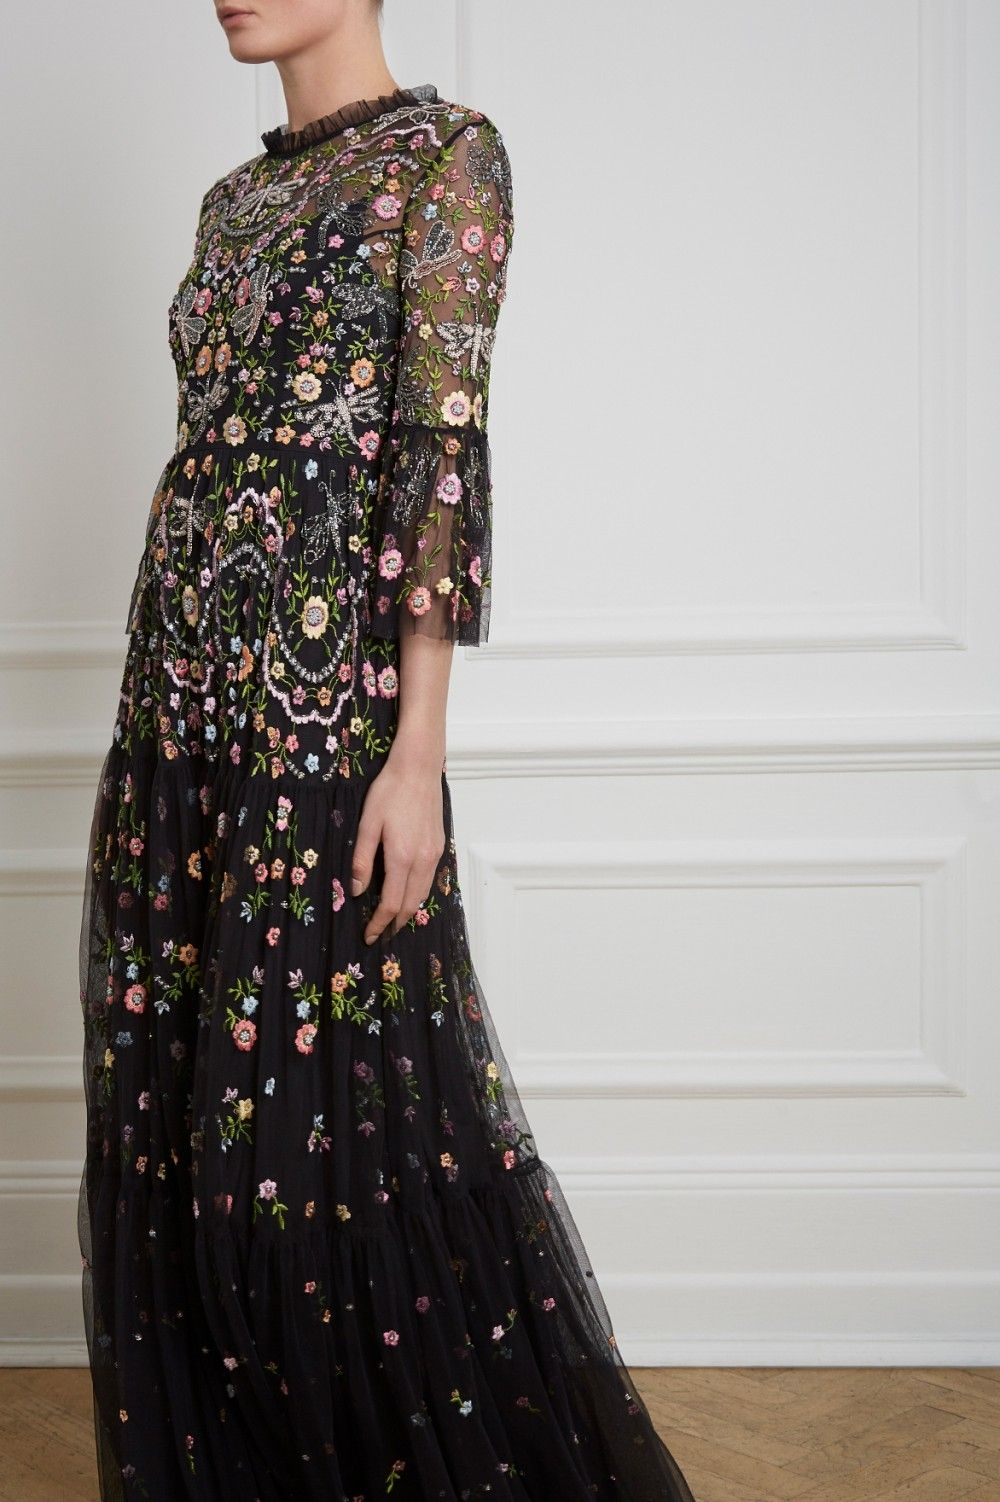 90cdcfbf77f Shop the Needle   Thread Dragonfly Garden Maxi Dress with next day  delivery. Discover more at our flagship online store.